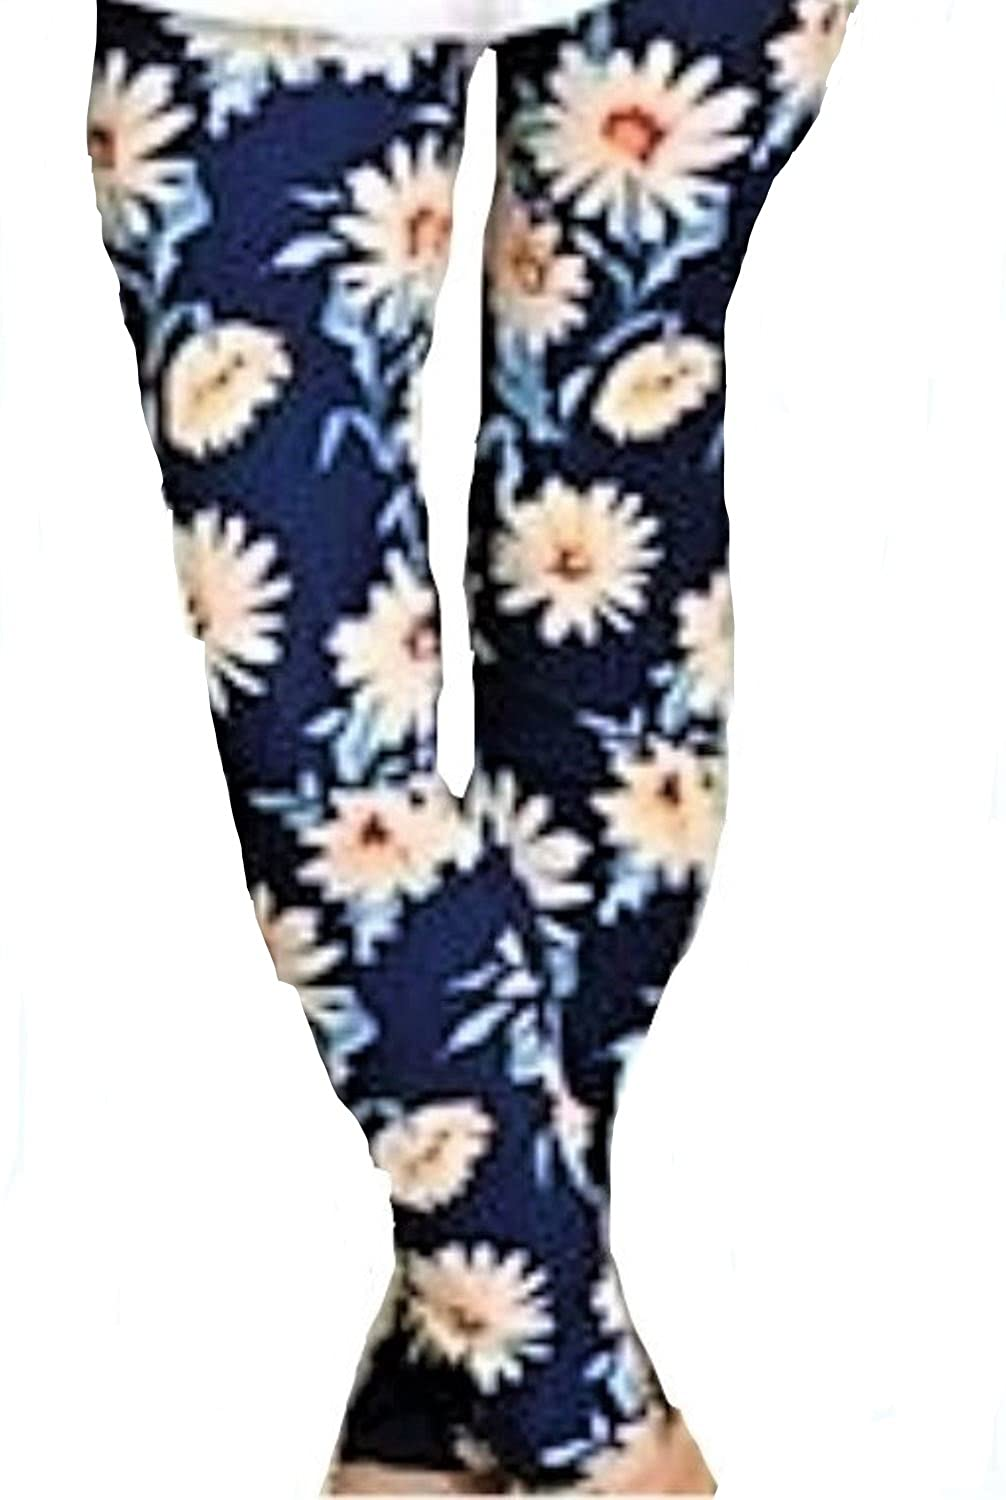 002507d13450 Infinity Raine Clothing Floral Daisy Leggings Super Soft Womens One Size  2-12 Comfortably: Amazon.in: Clothing & Accessories